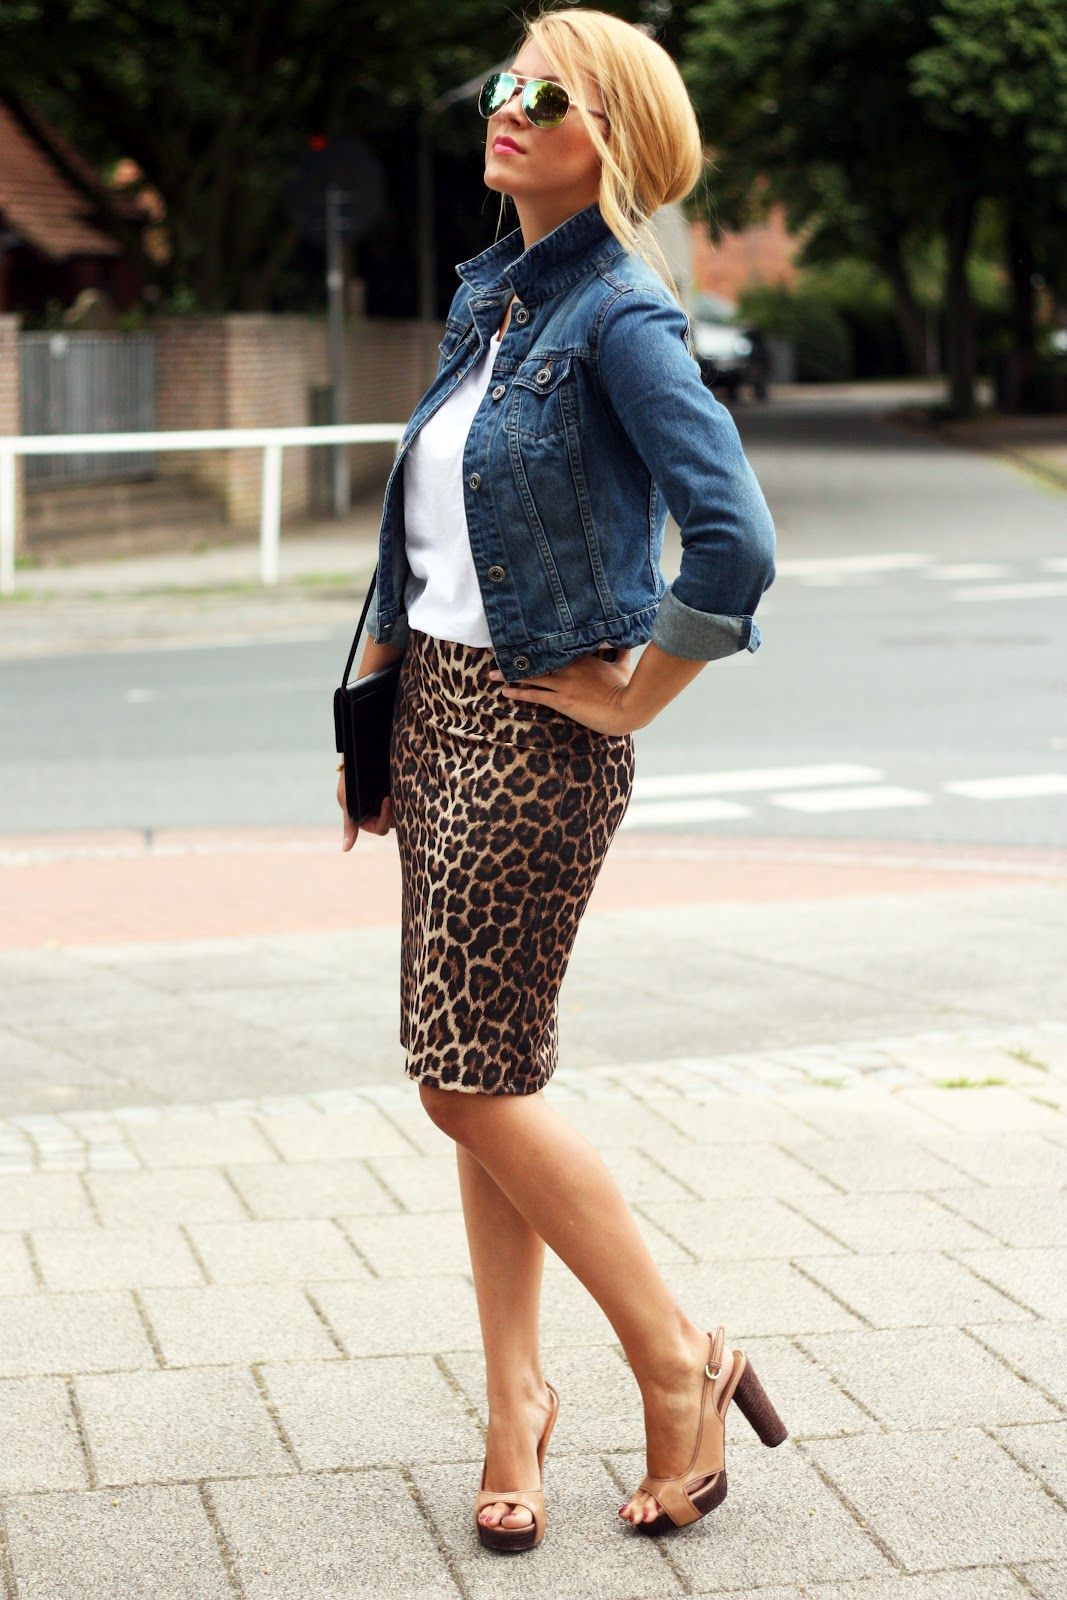 Image result for Leopard Print outfit with denim